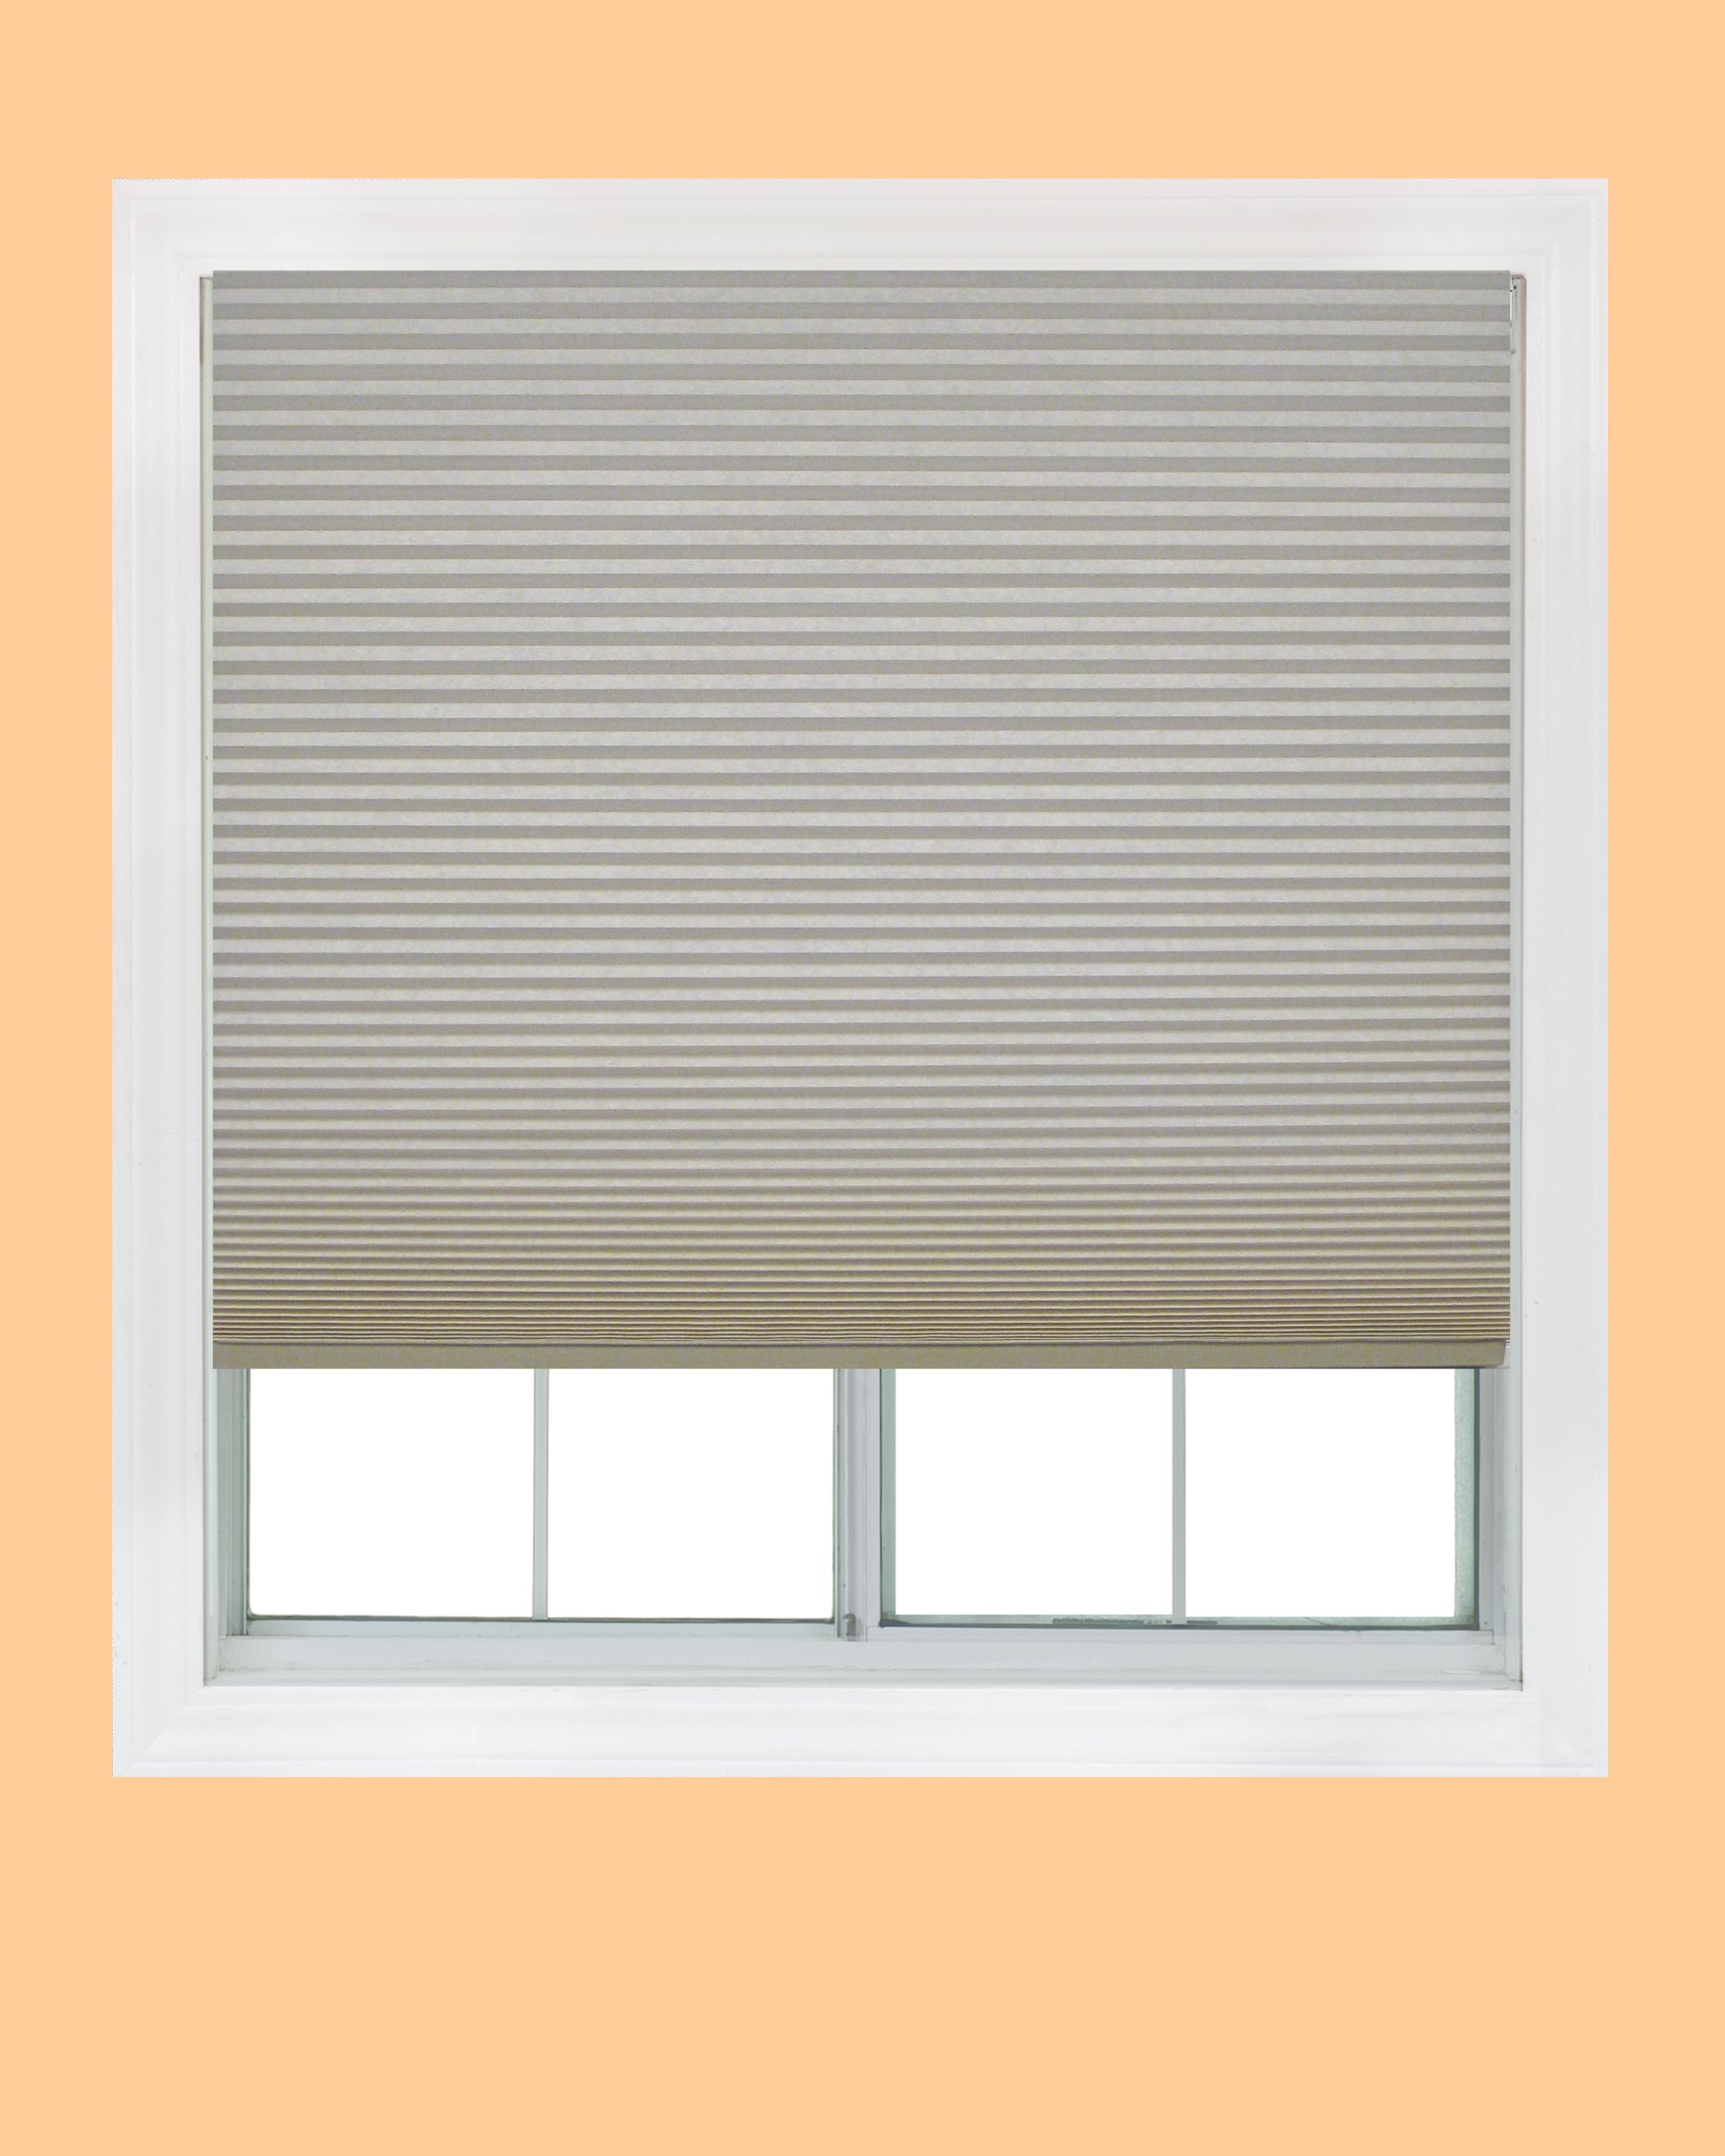 Easy Lift, 48-inch by 64-inch, Trim-at-Home (fits windows 28-inches to 48-inches wide) Cordless Honeycomb Cellular Shade, Light Filtering, Natural